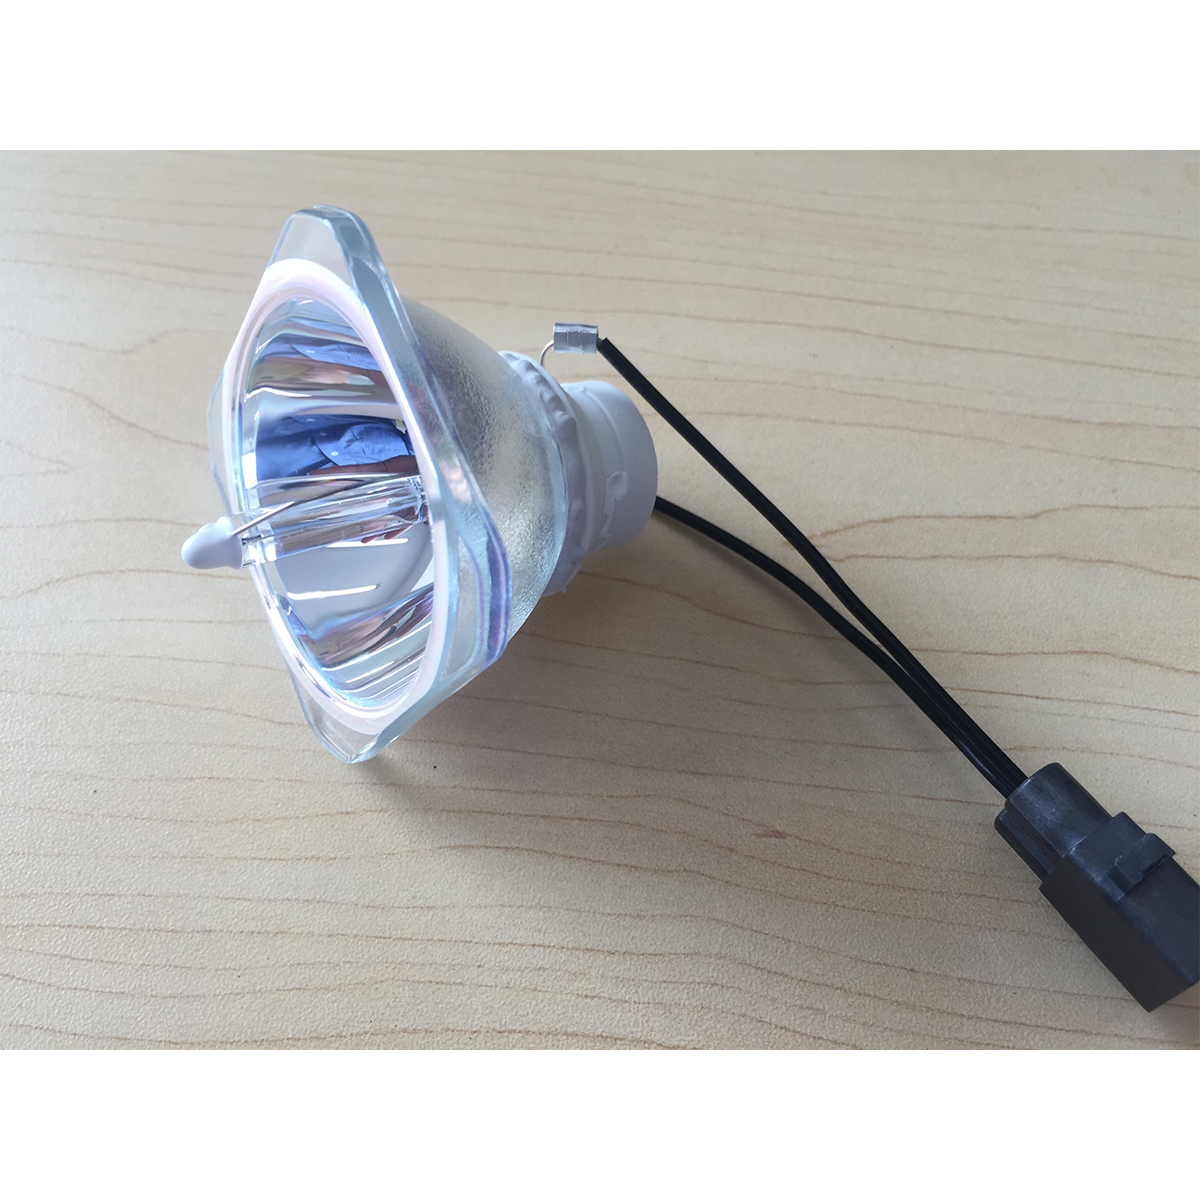 Replacement Projector lamp Light Bulb Wall Lamp For Projector EB-C2030WN C2020XN C2010XH for Epson